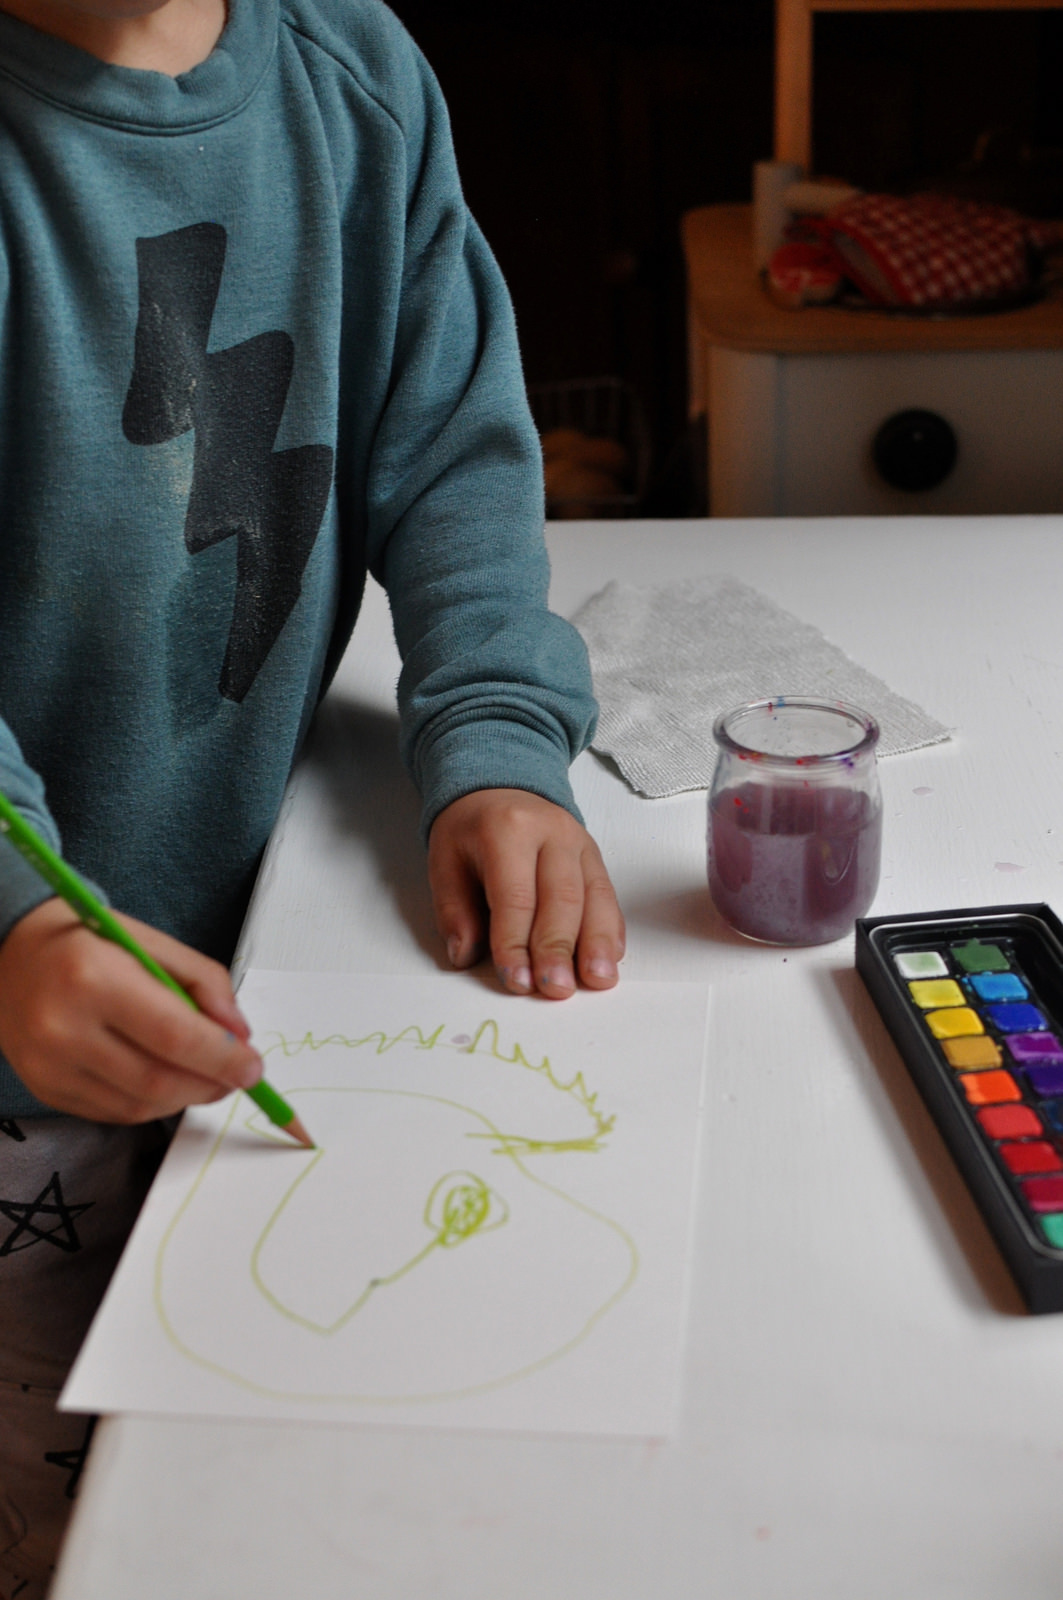 Montessori-Inspired: Watercolors